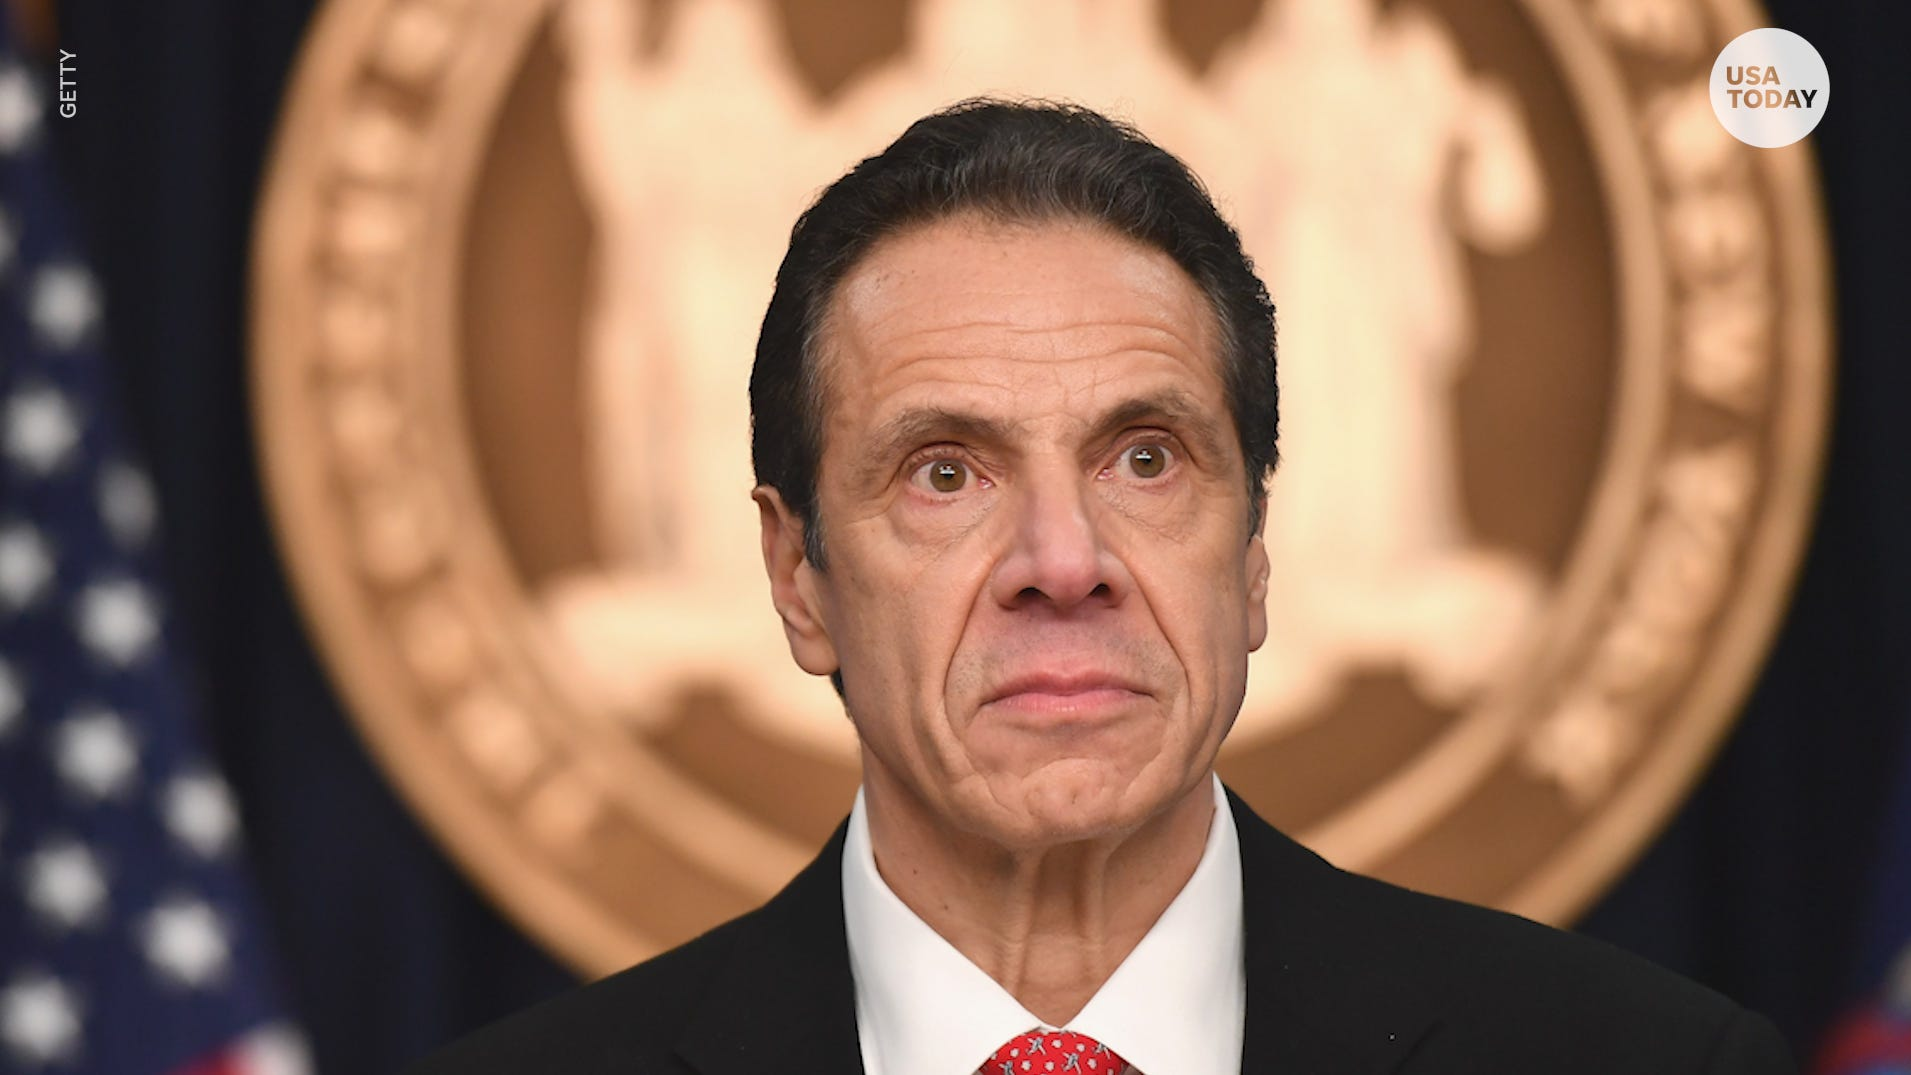 New York Governor Andrew Cuomo resigns in light of harassment scandal